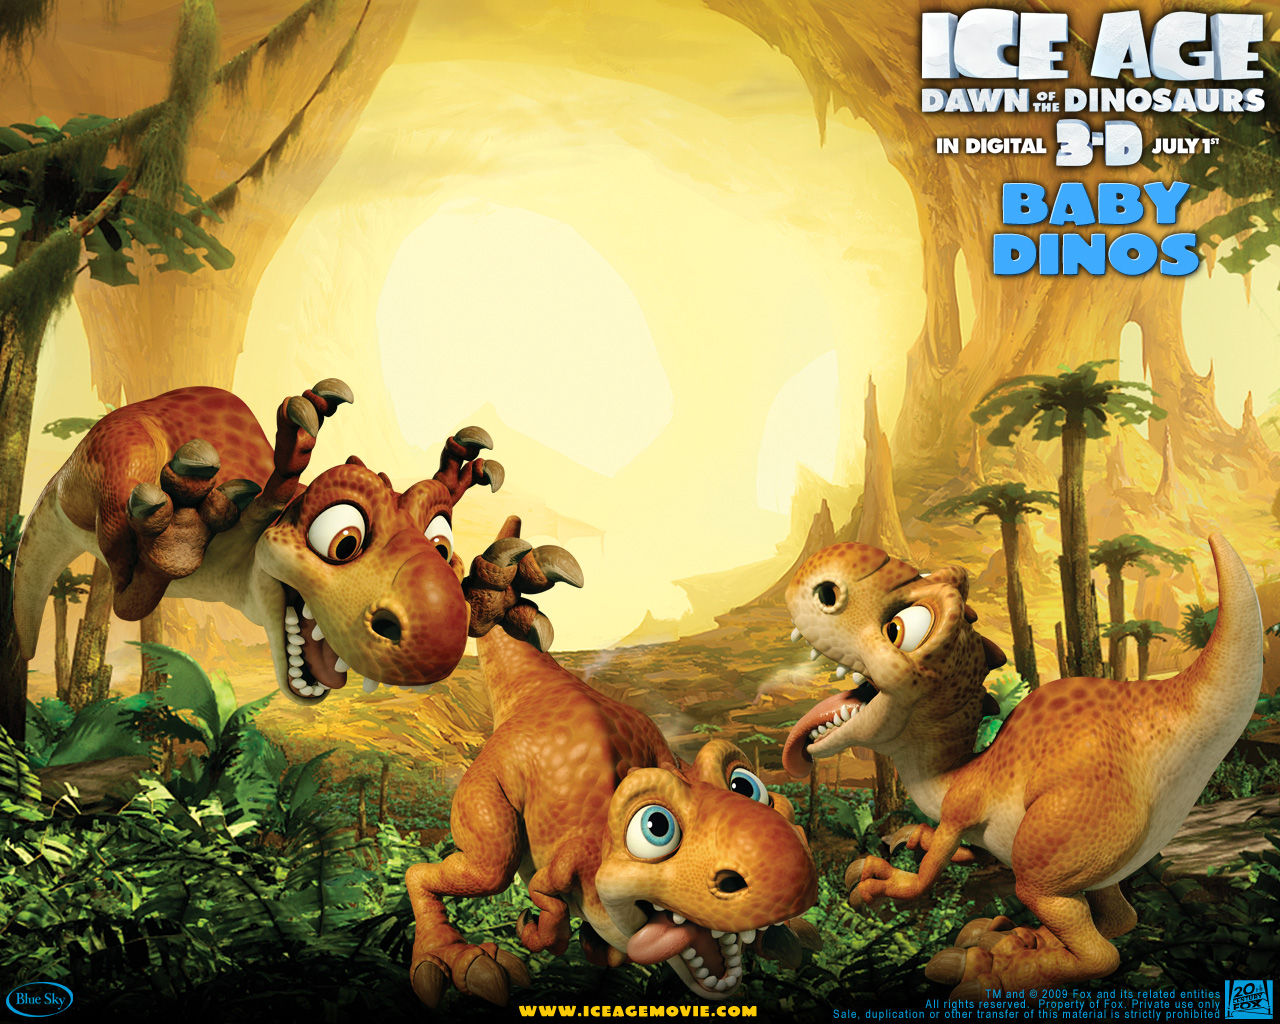 High Resolution Wallpaper | Ice Age: Dawn Of The Dinosaurs 1280x1024 px